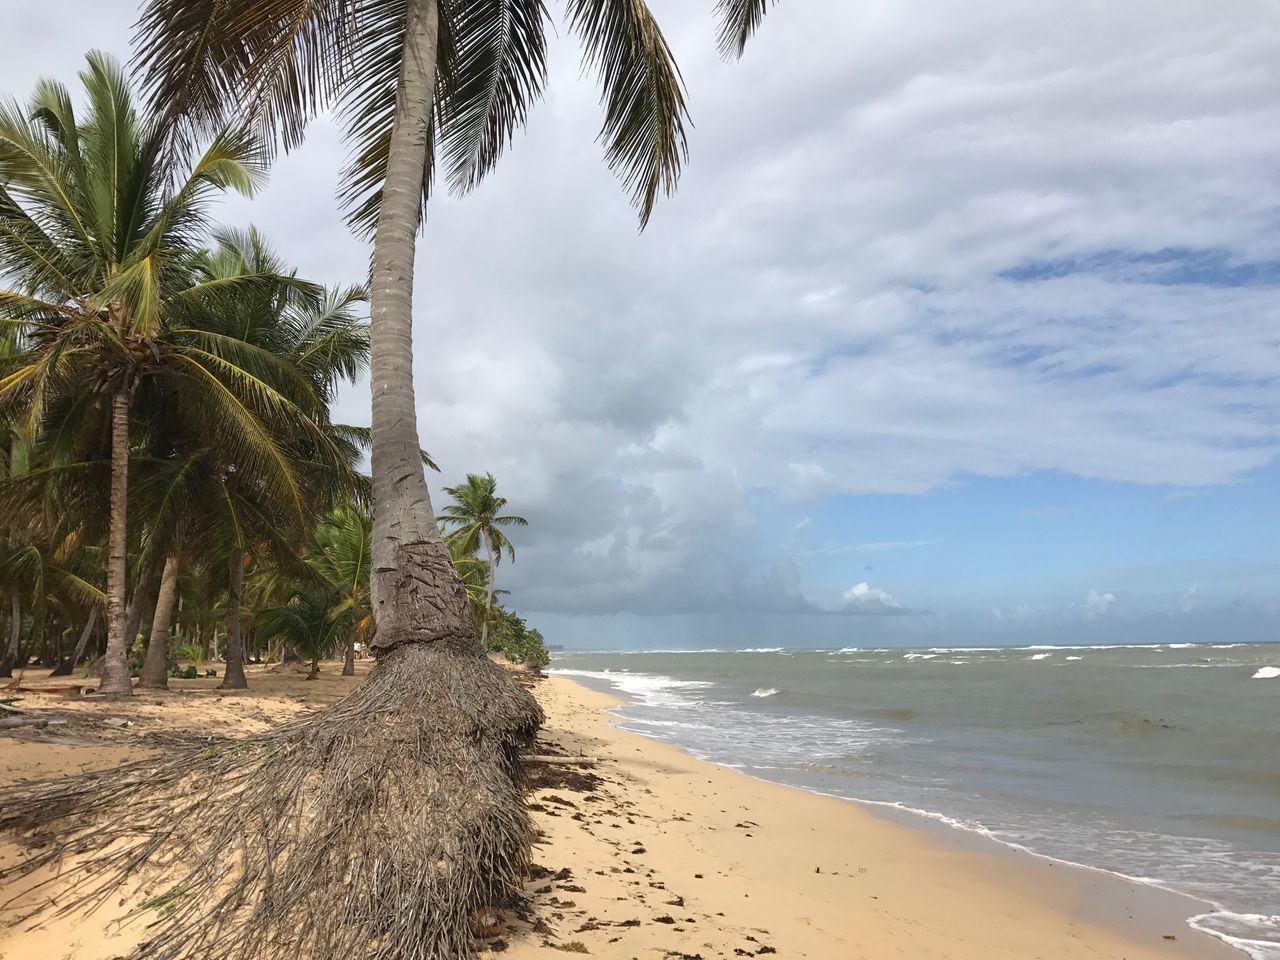 Ocean view Ocean View Palm Tree Scenics Tranquil Scene Beach Beauty In Nature Dominican Republic Sand Palm Tree Cloud - Sky Seascape Seaside Sea Summer Summertime Summer Views